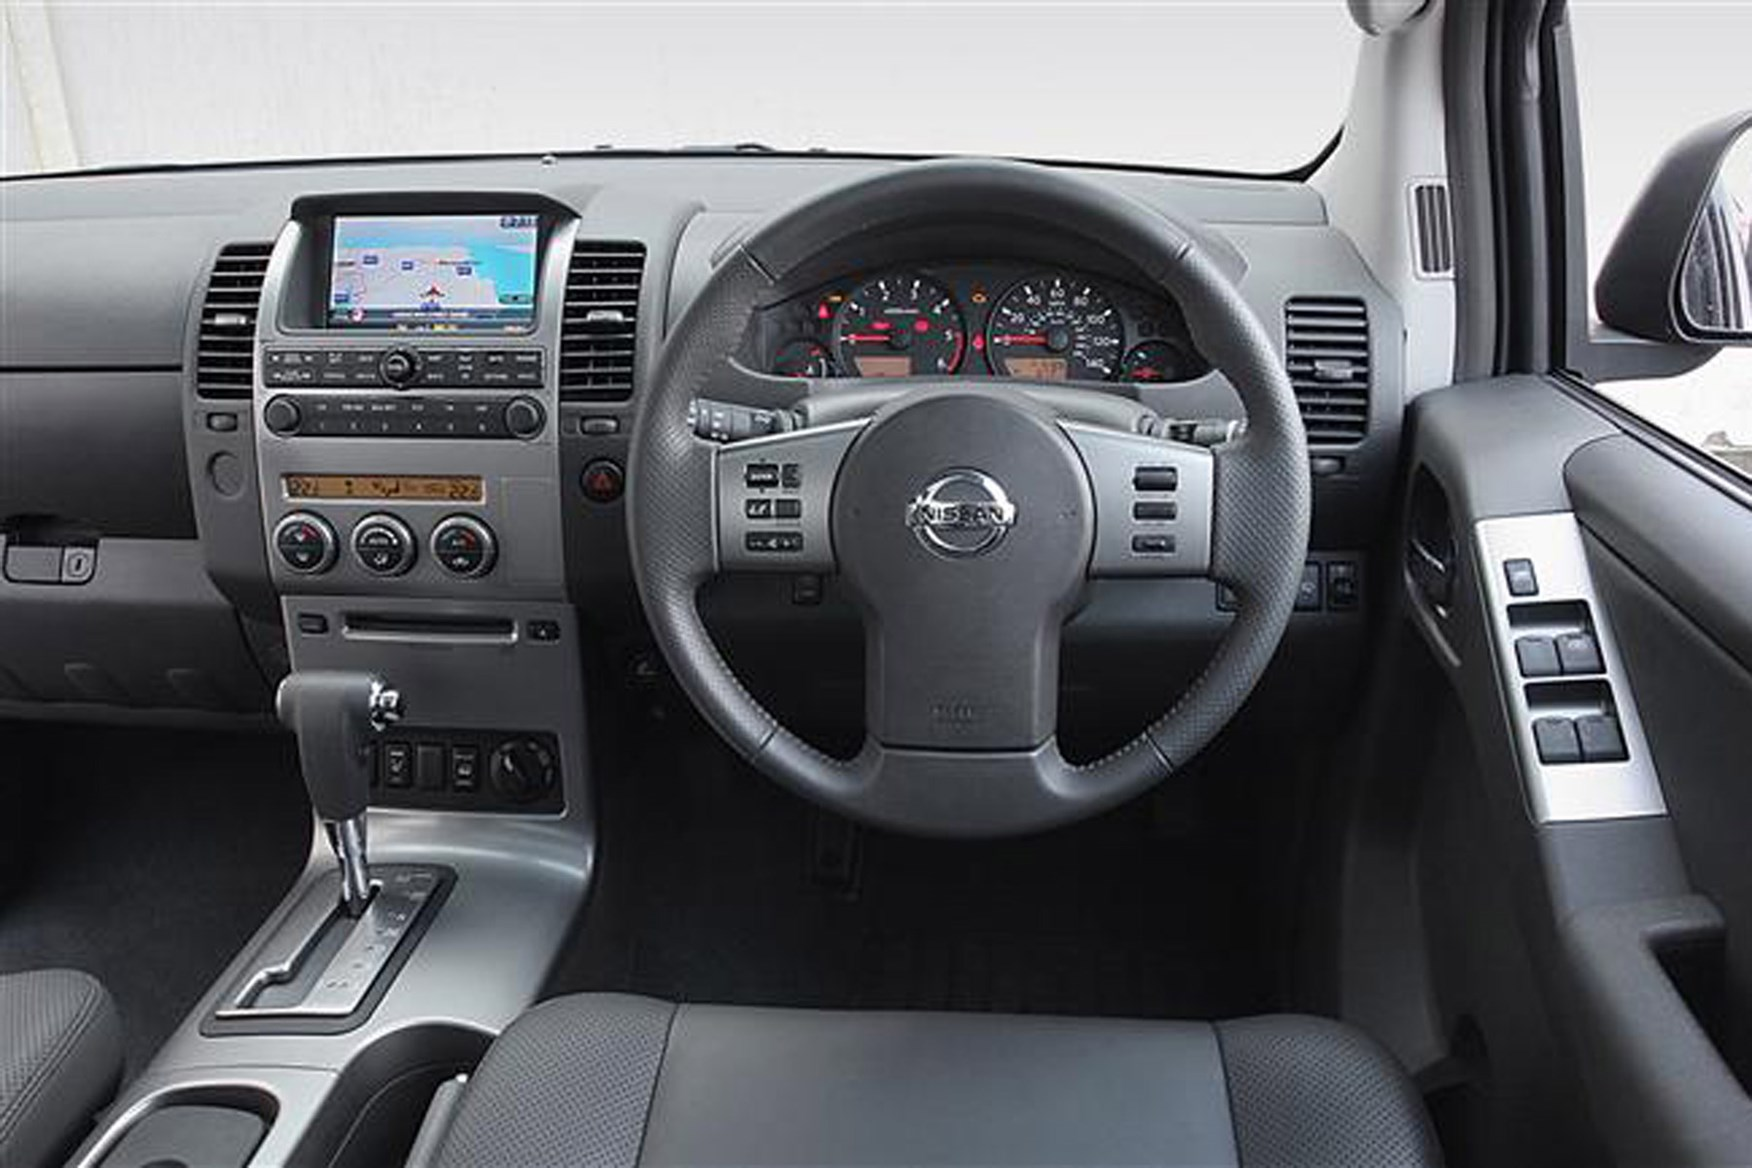 Nissan Navara 2005-2015 review on Parkers Vans - in the driver's seat